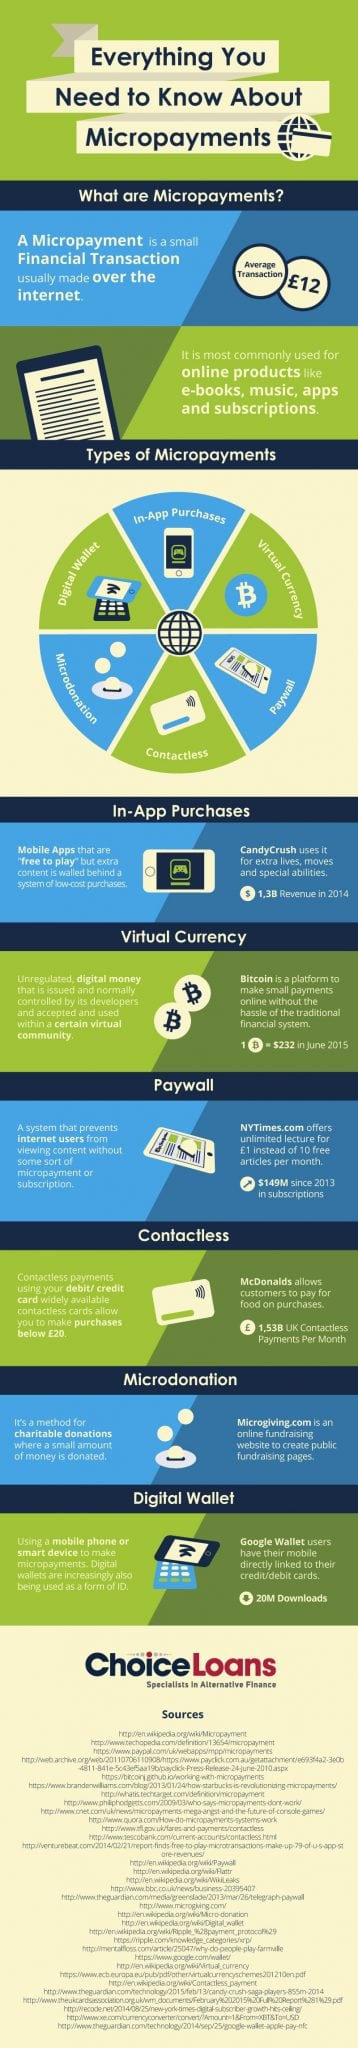 Photo of Everything You Need to Know About Micropayments [INFOGRAPHIC]